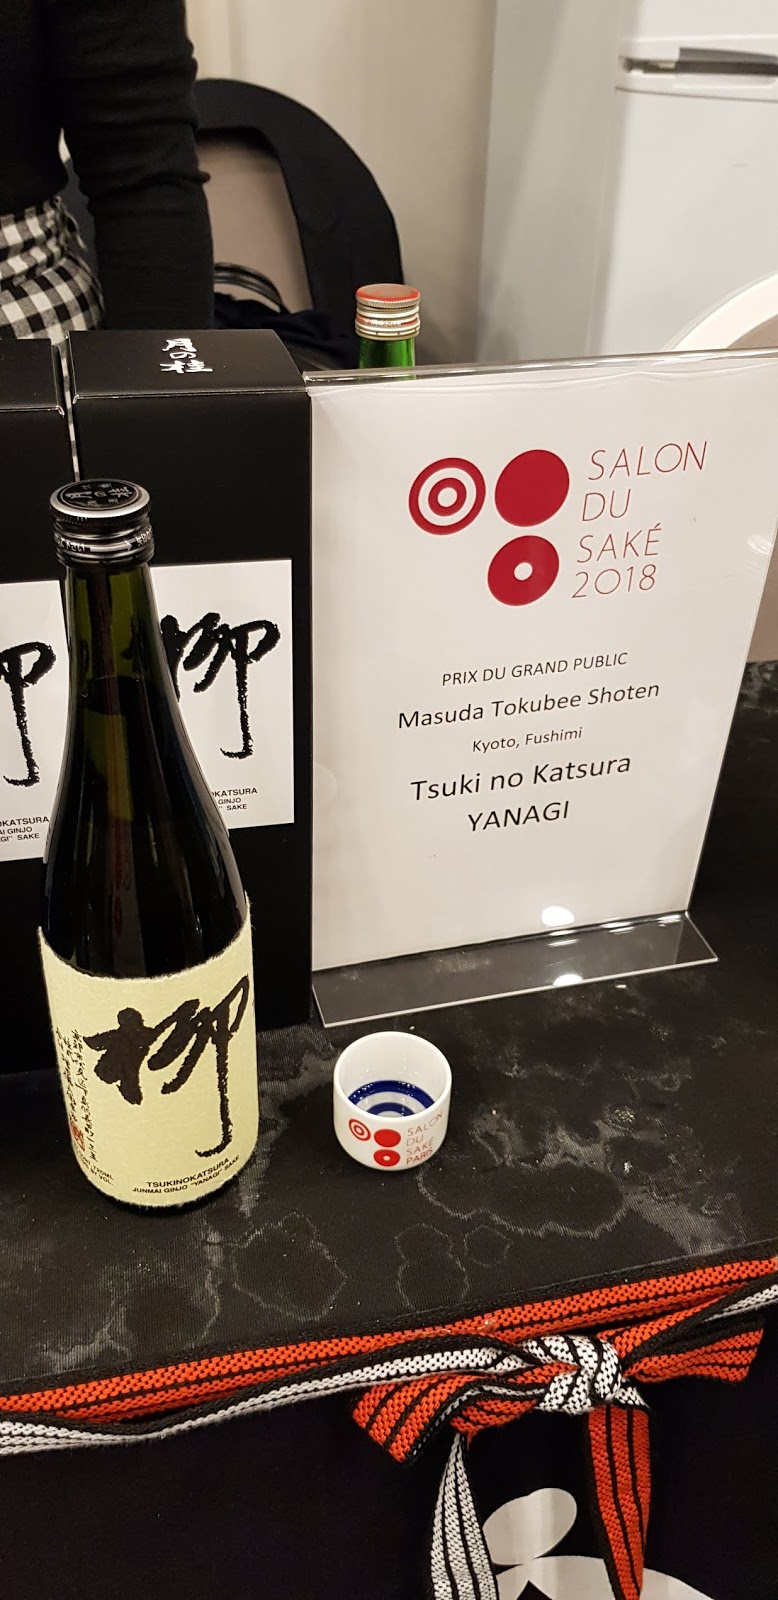 Salon du Saké 2018